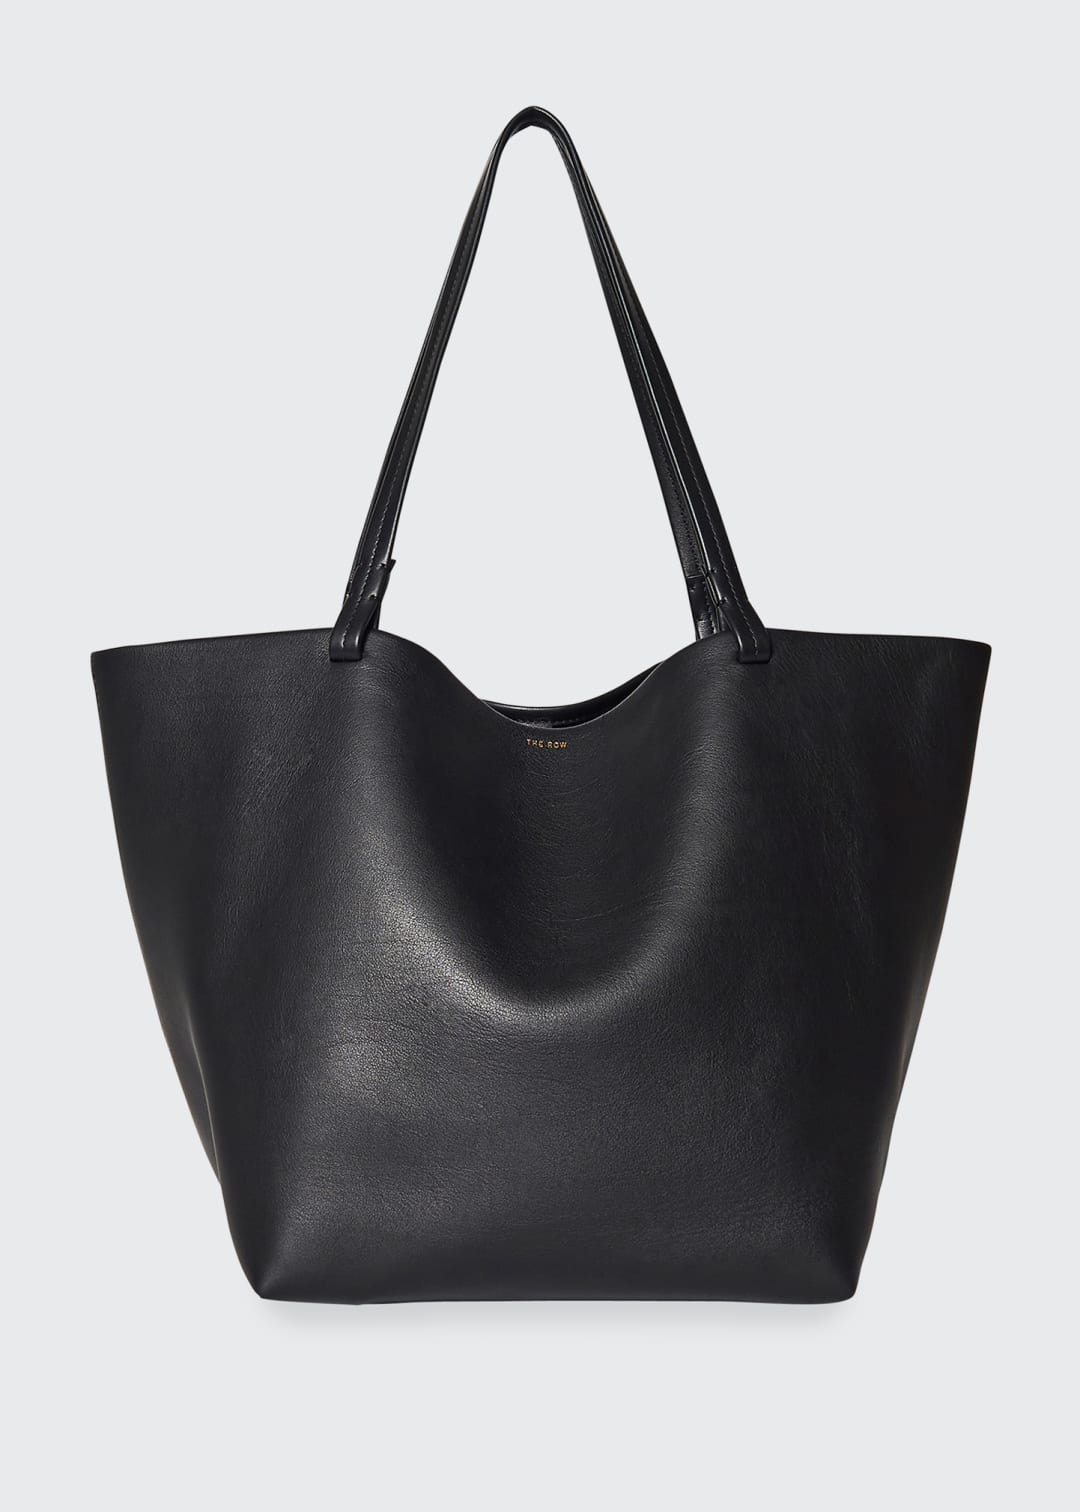 Park Leather Tote Bag by The Row, available on bergdorfgoodman.com for $1790 Gigi Hadid Bags Exact Product